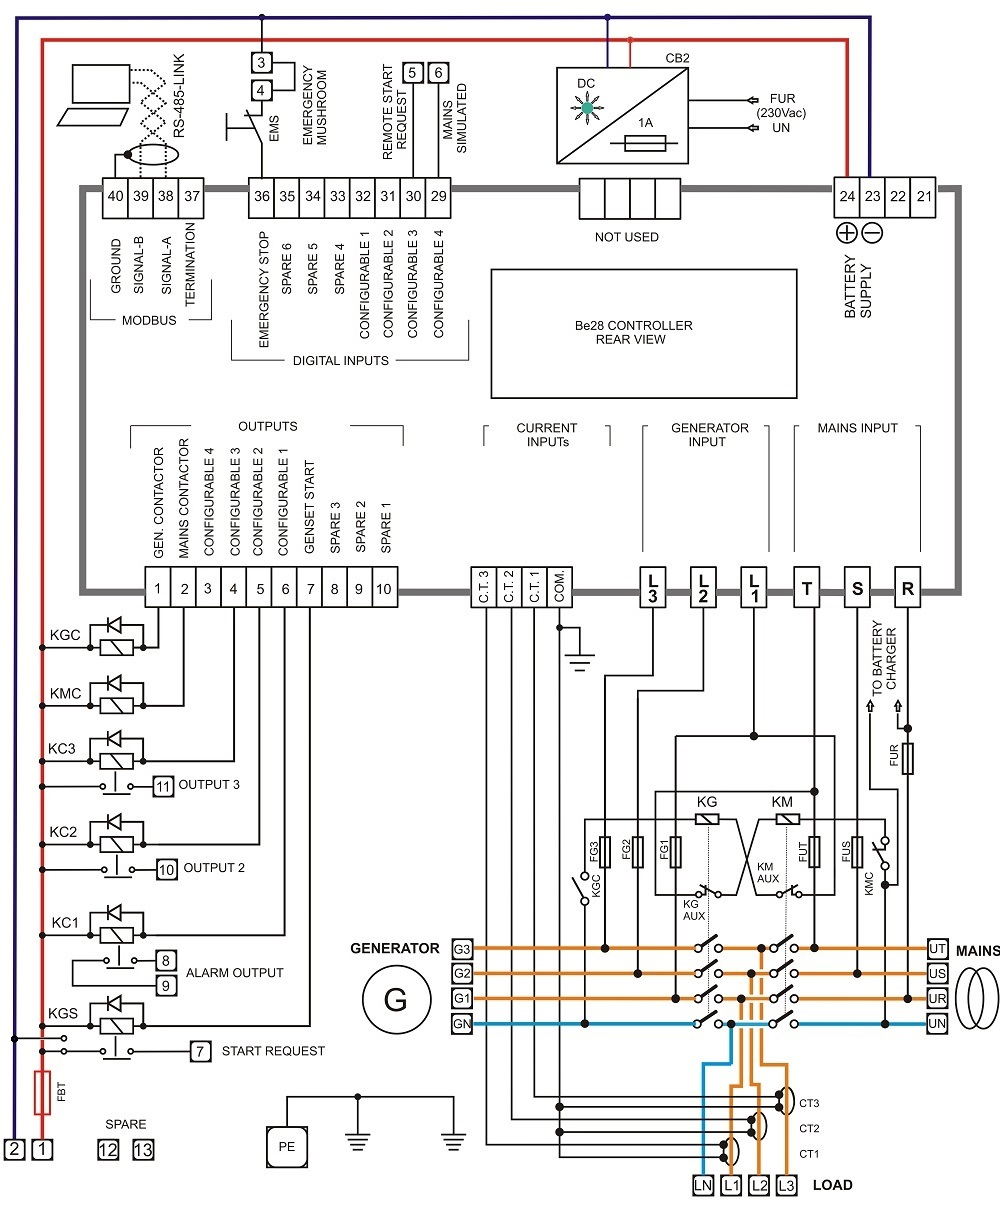 Citroen Berlingo Wiring Diagram - efcaviation.com on light electrical wiring, light transmission diagram, 2007 ford f-150 fuse box diagram, light bar diagram, 2 lights 2 switches diagram, light bulbs diagram, light installation diagram, 2004 pontiac grand prix fuse box diagram, 2004 acura tl fuse box diagram, light switch, light electrical diagram, light wiring parts, light roof diagram, http diagram, ford bronco fuse box diagram, light body diagram, light thermostat diagram, parking lights diagram, circuit diagram, 1994 mazda b4000 fuse panel diagram,